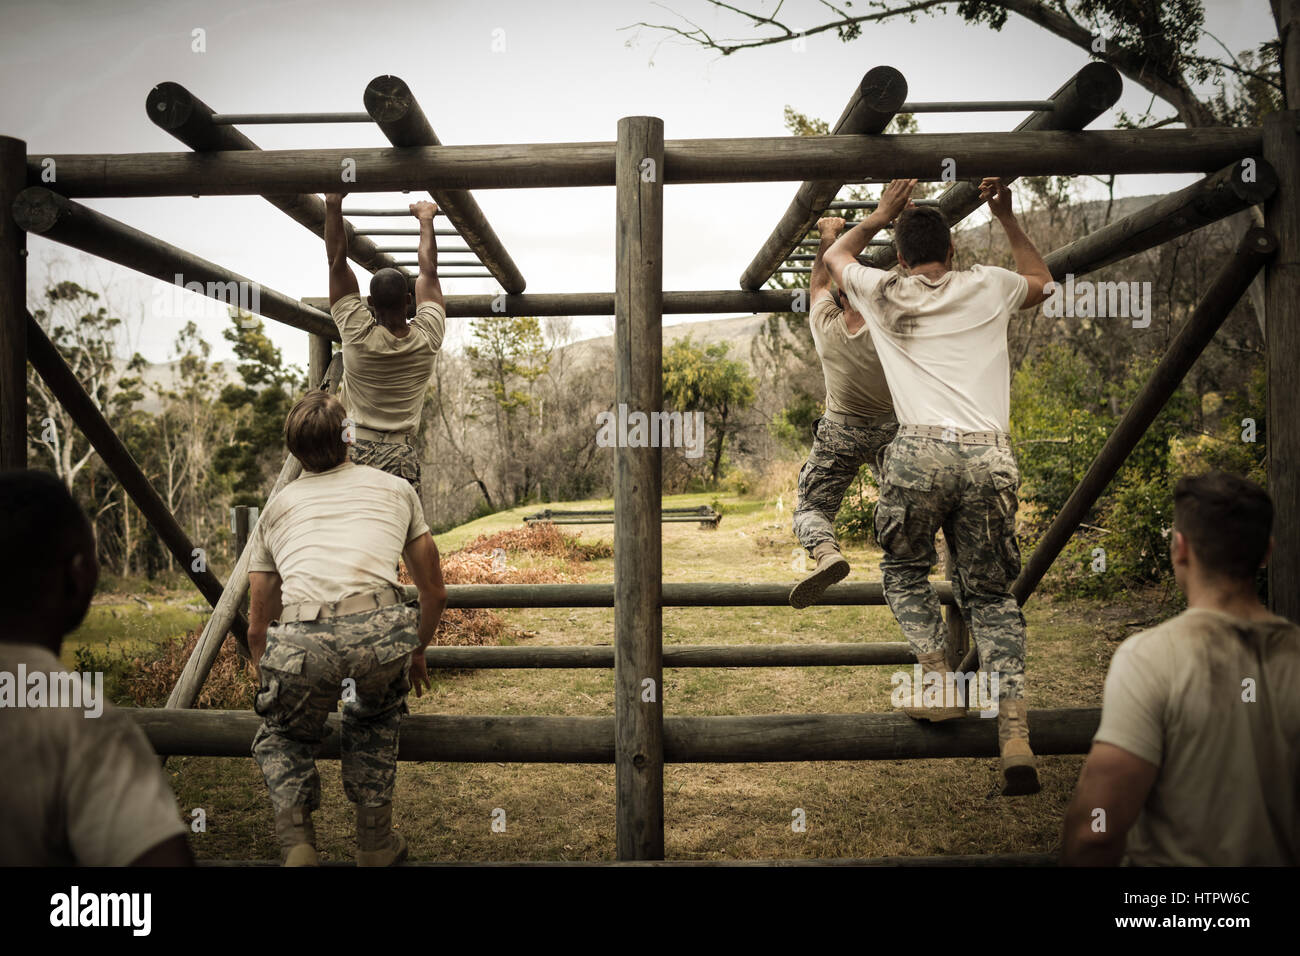 Rear view of soldiers climbing monkey bars - Stock Image